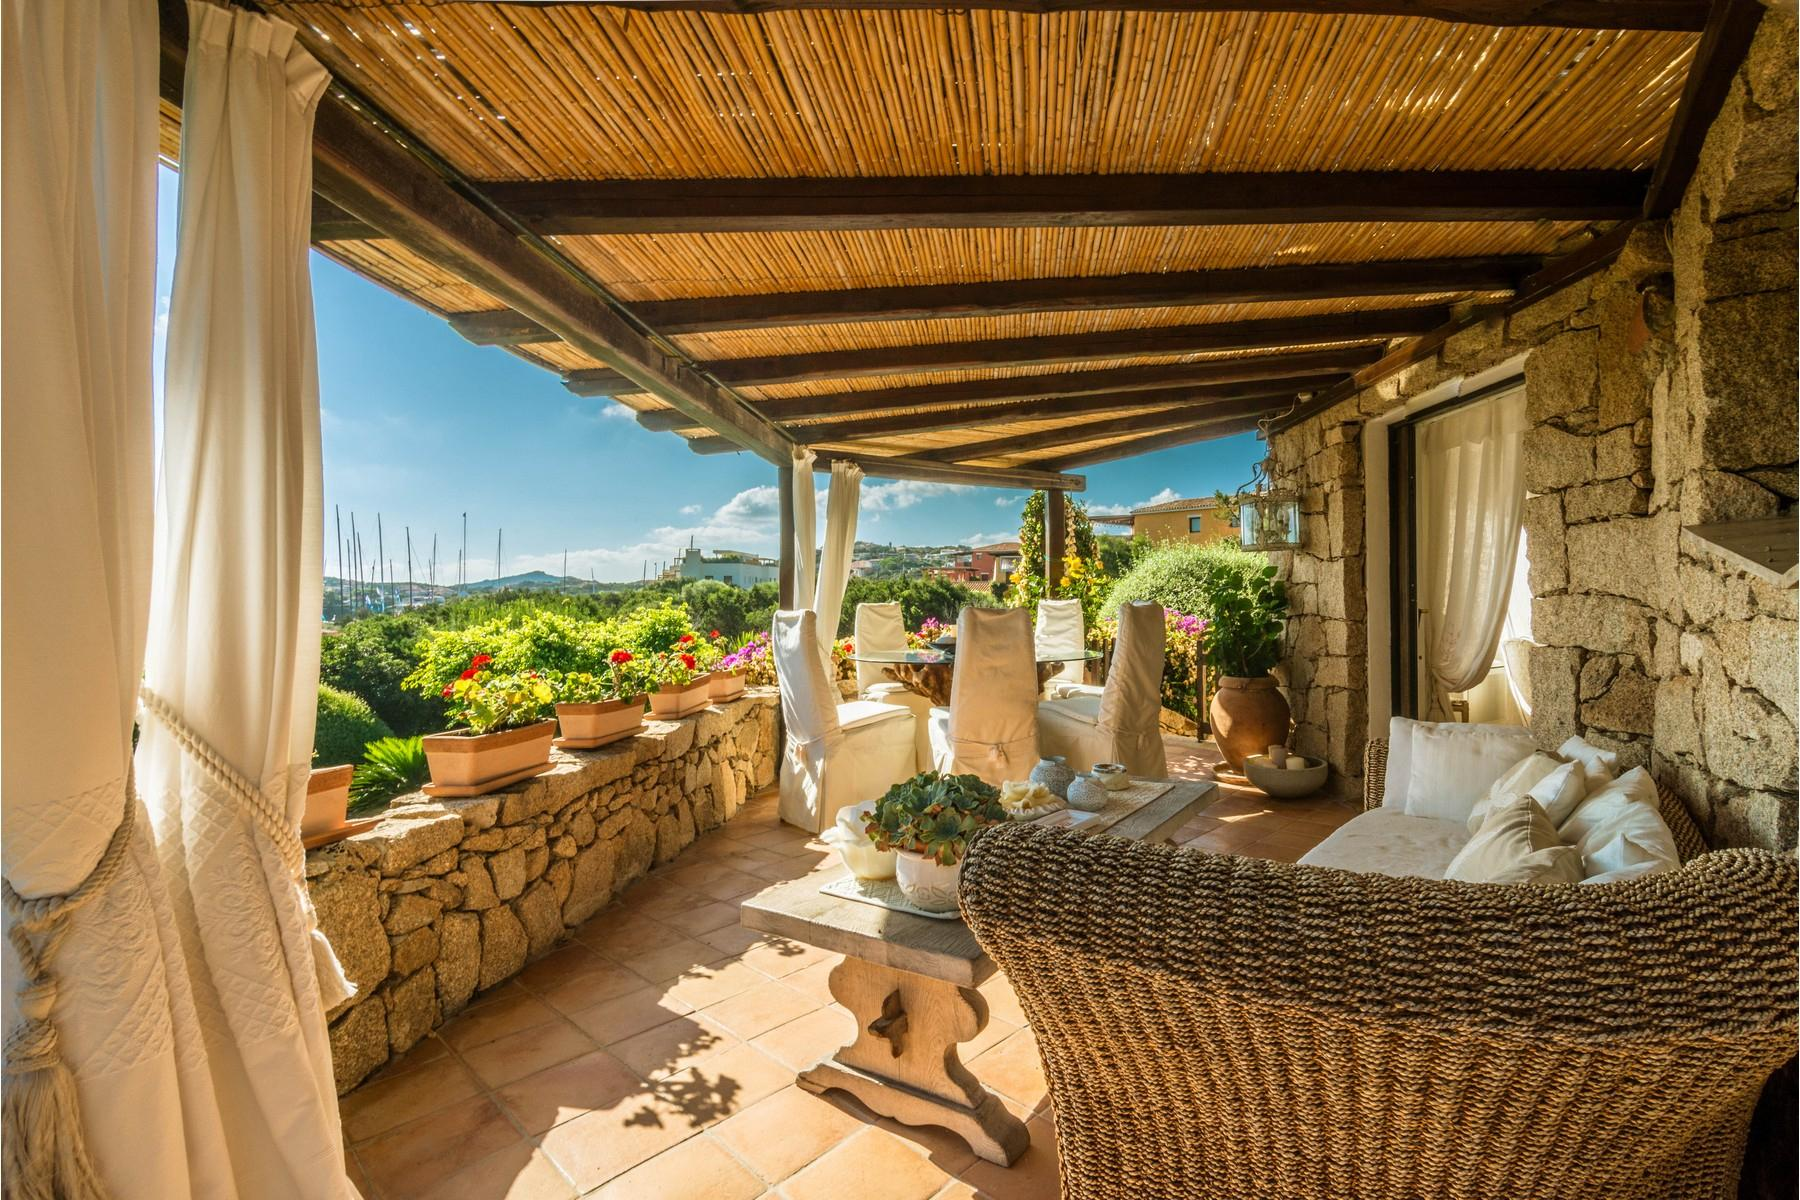 Porto Cervo Marina - Magnificient Villa with private pool - 8